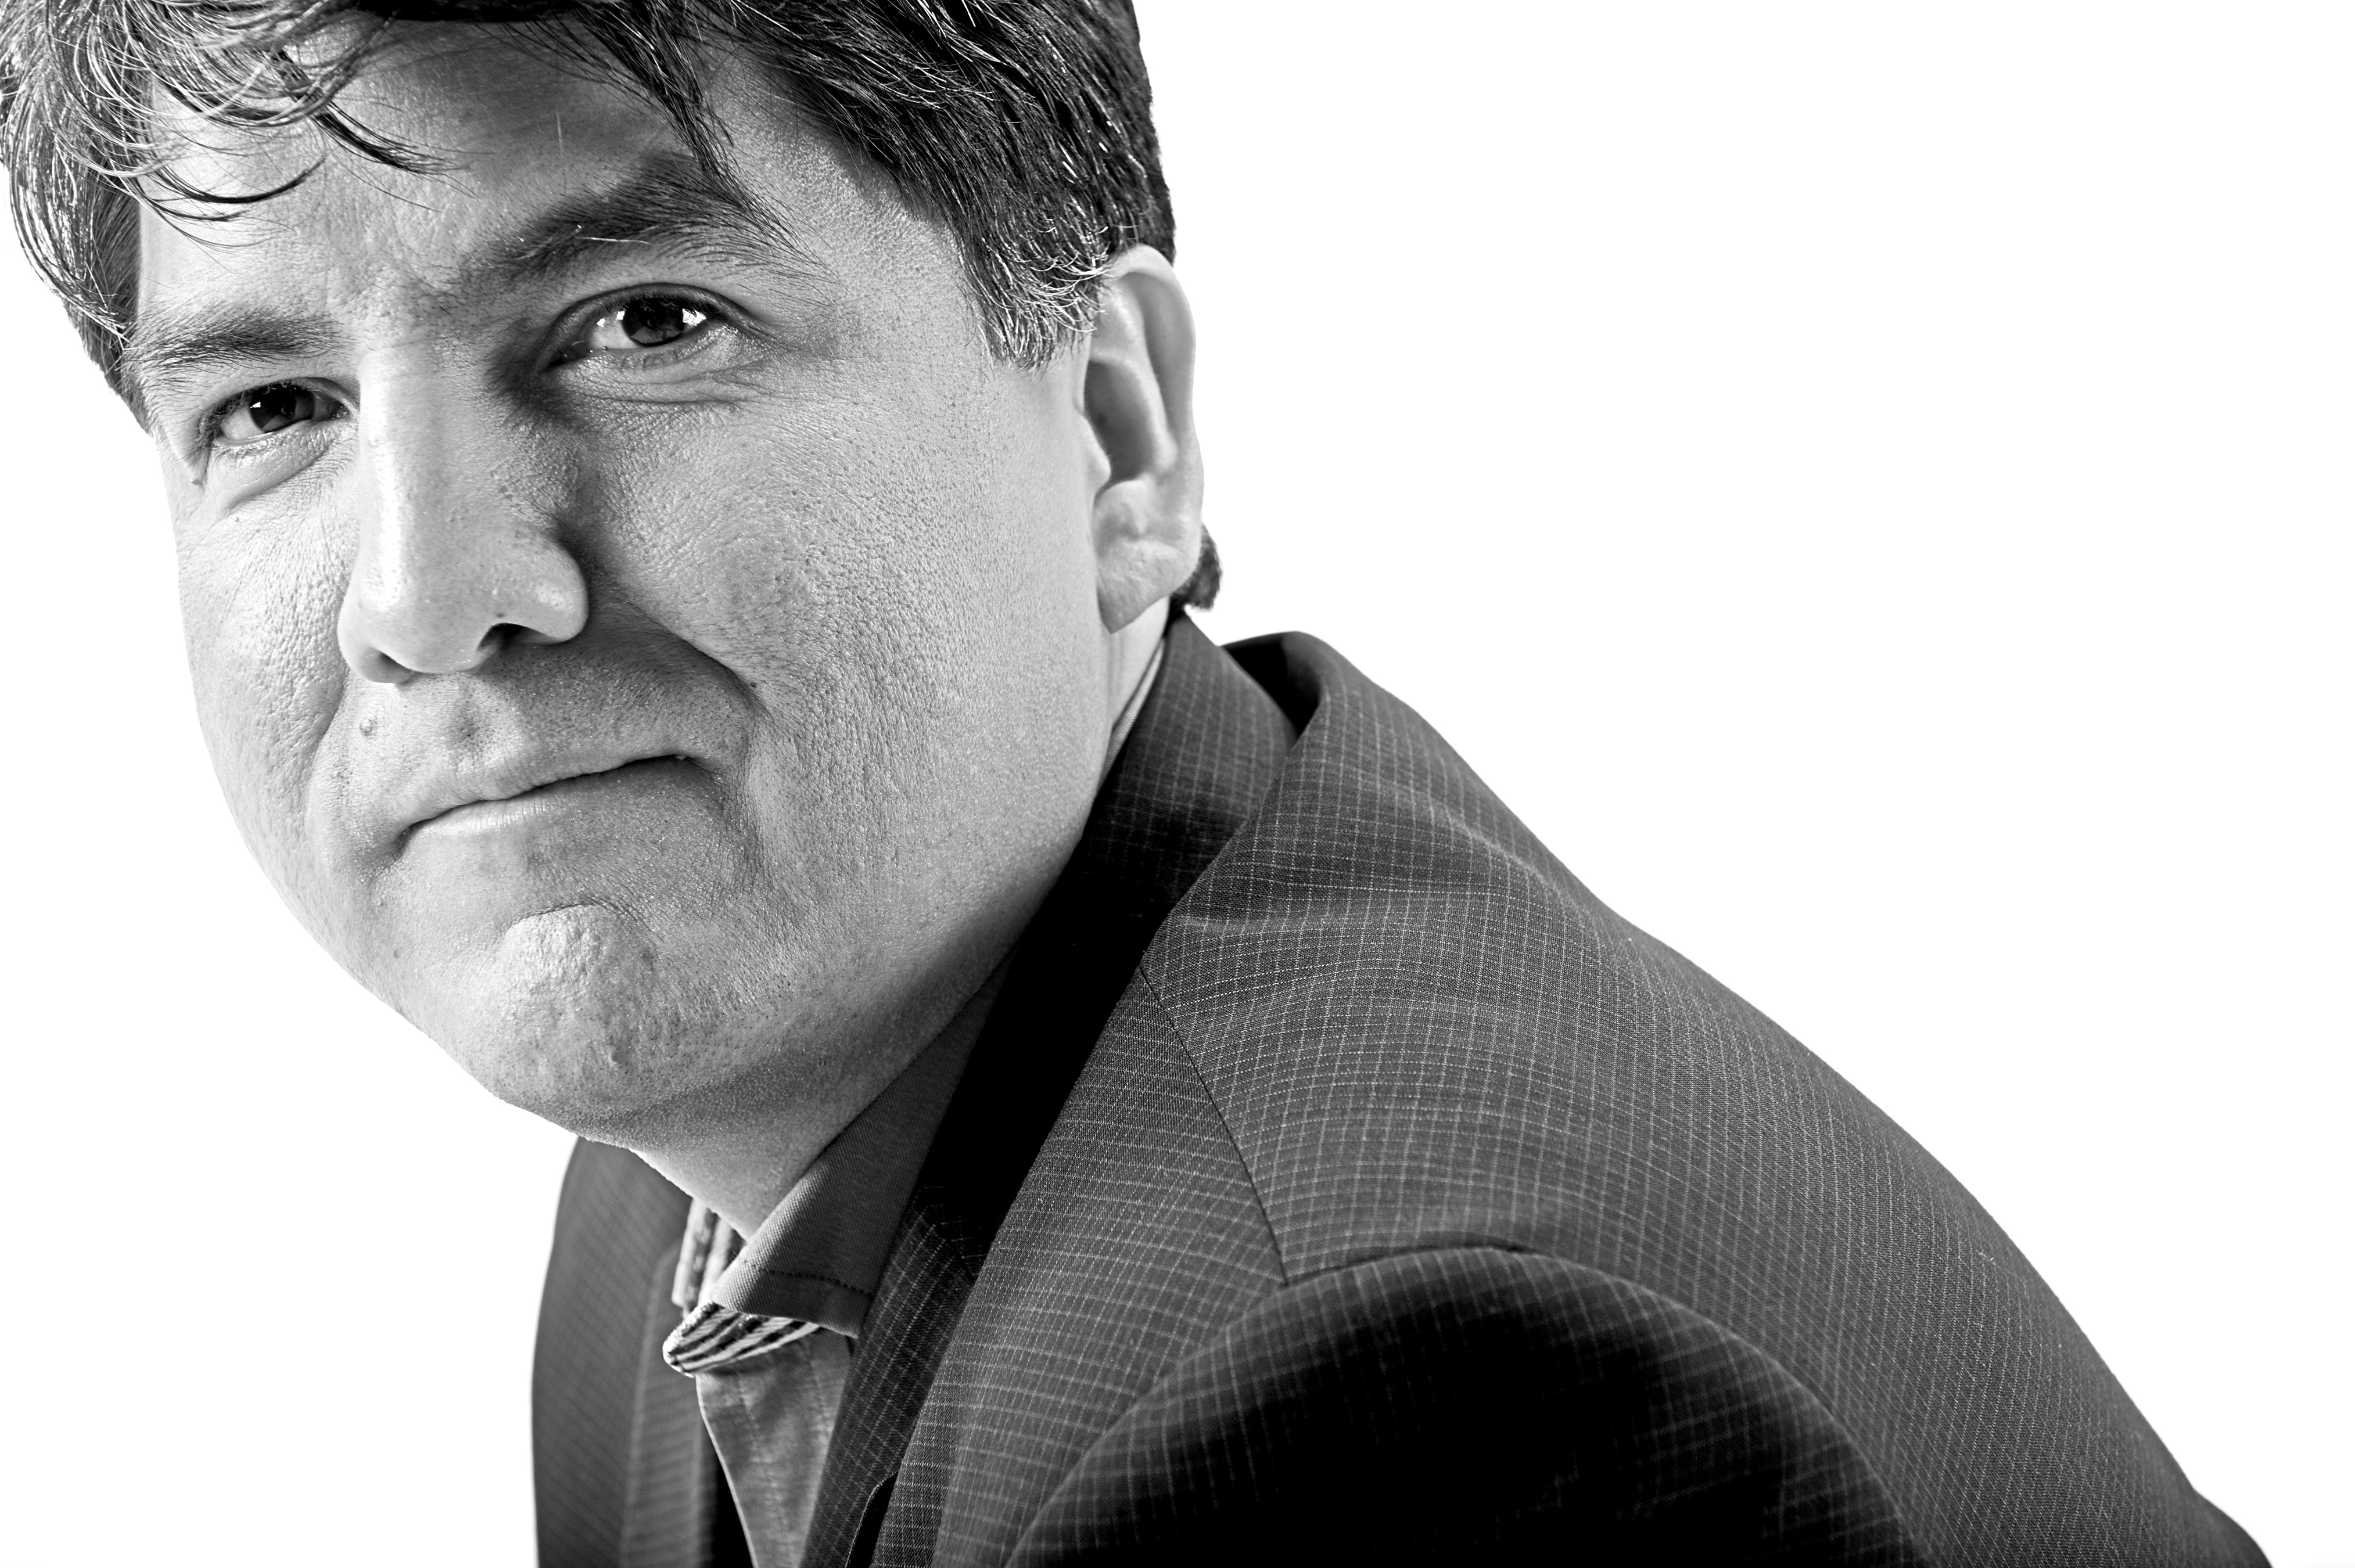 an essay on sherman alexie s use The story begins with him teaching himself to read using a superman comic book   we will write a custom essay sample on sherman alexie's superman and me   retrieved from  .